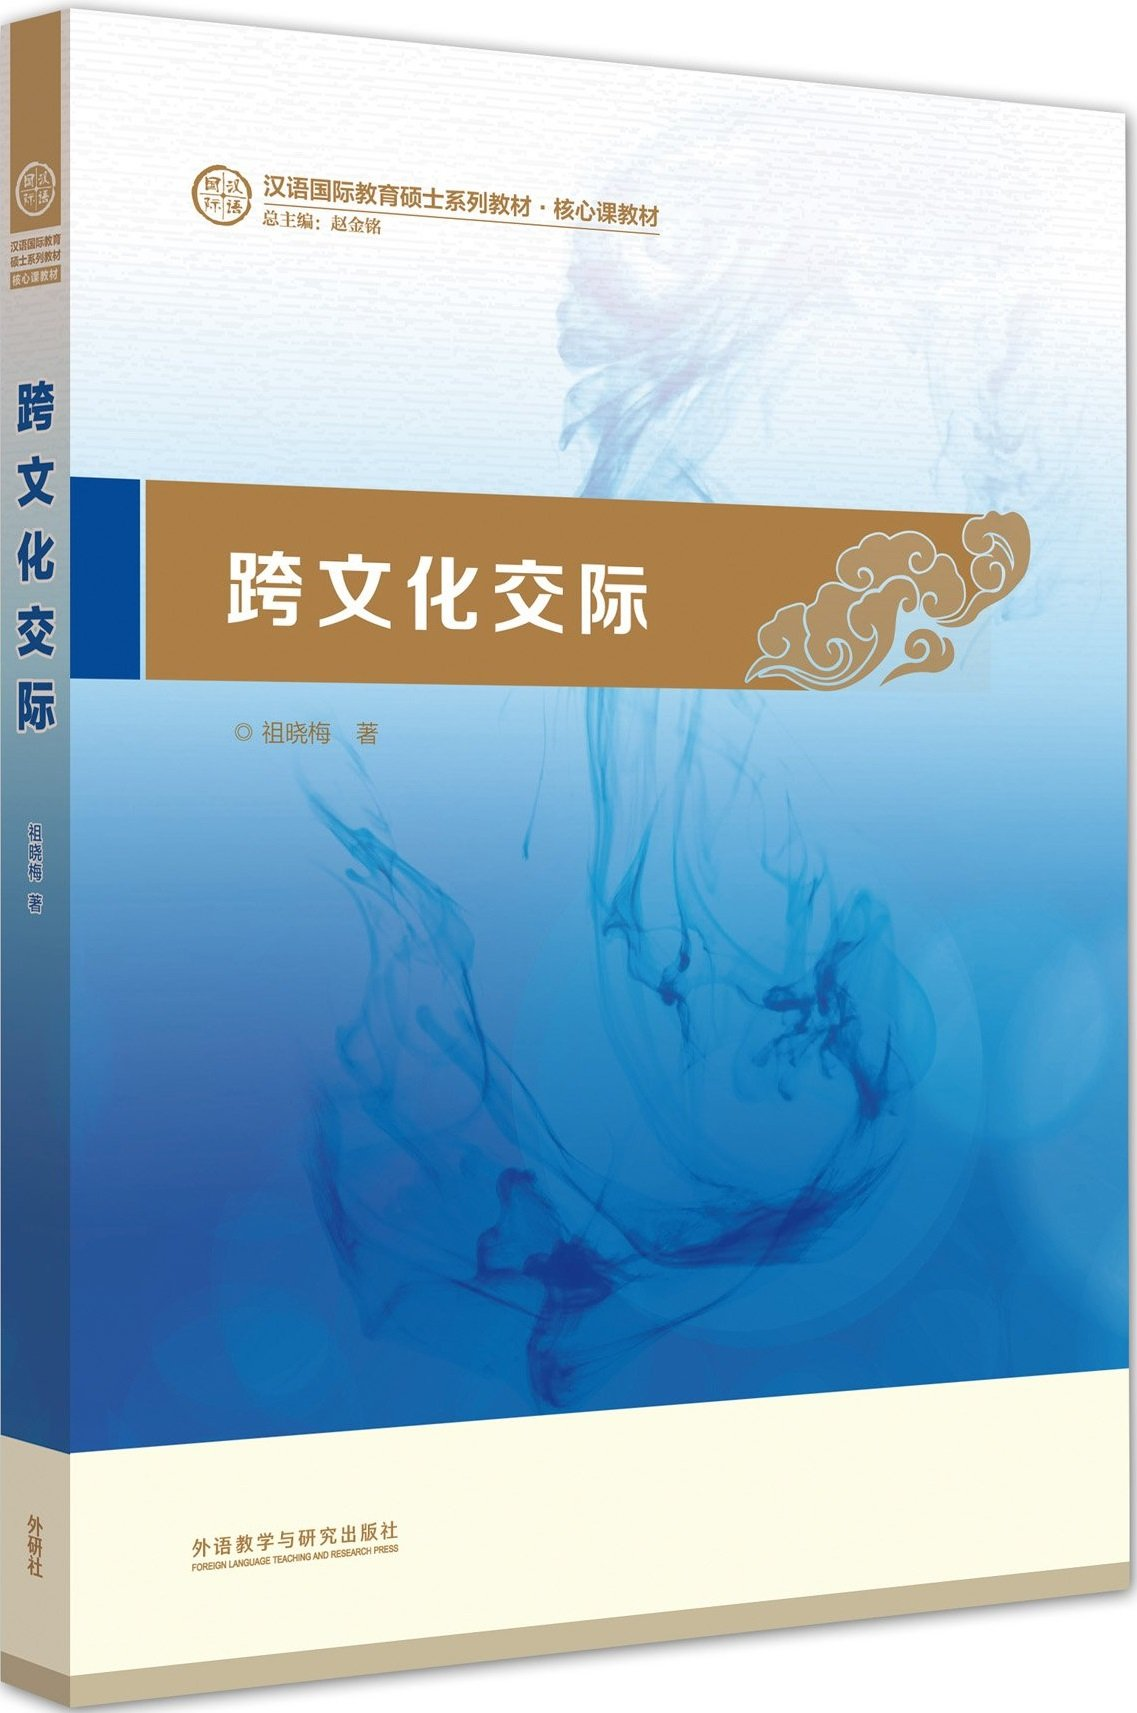 Download Intercultural Communication (Master of International Education of Chinese textbook series)(Chinese Edition) pdf